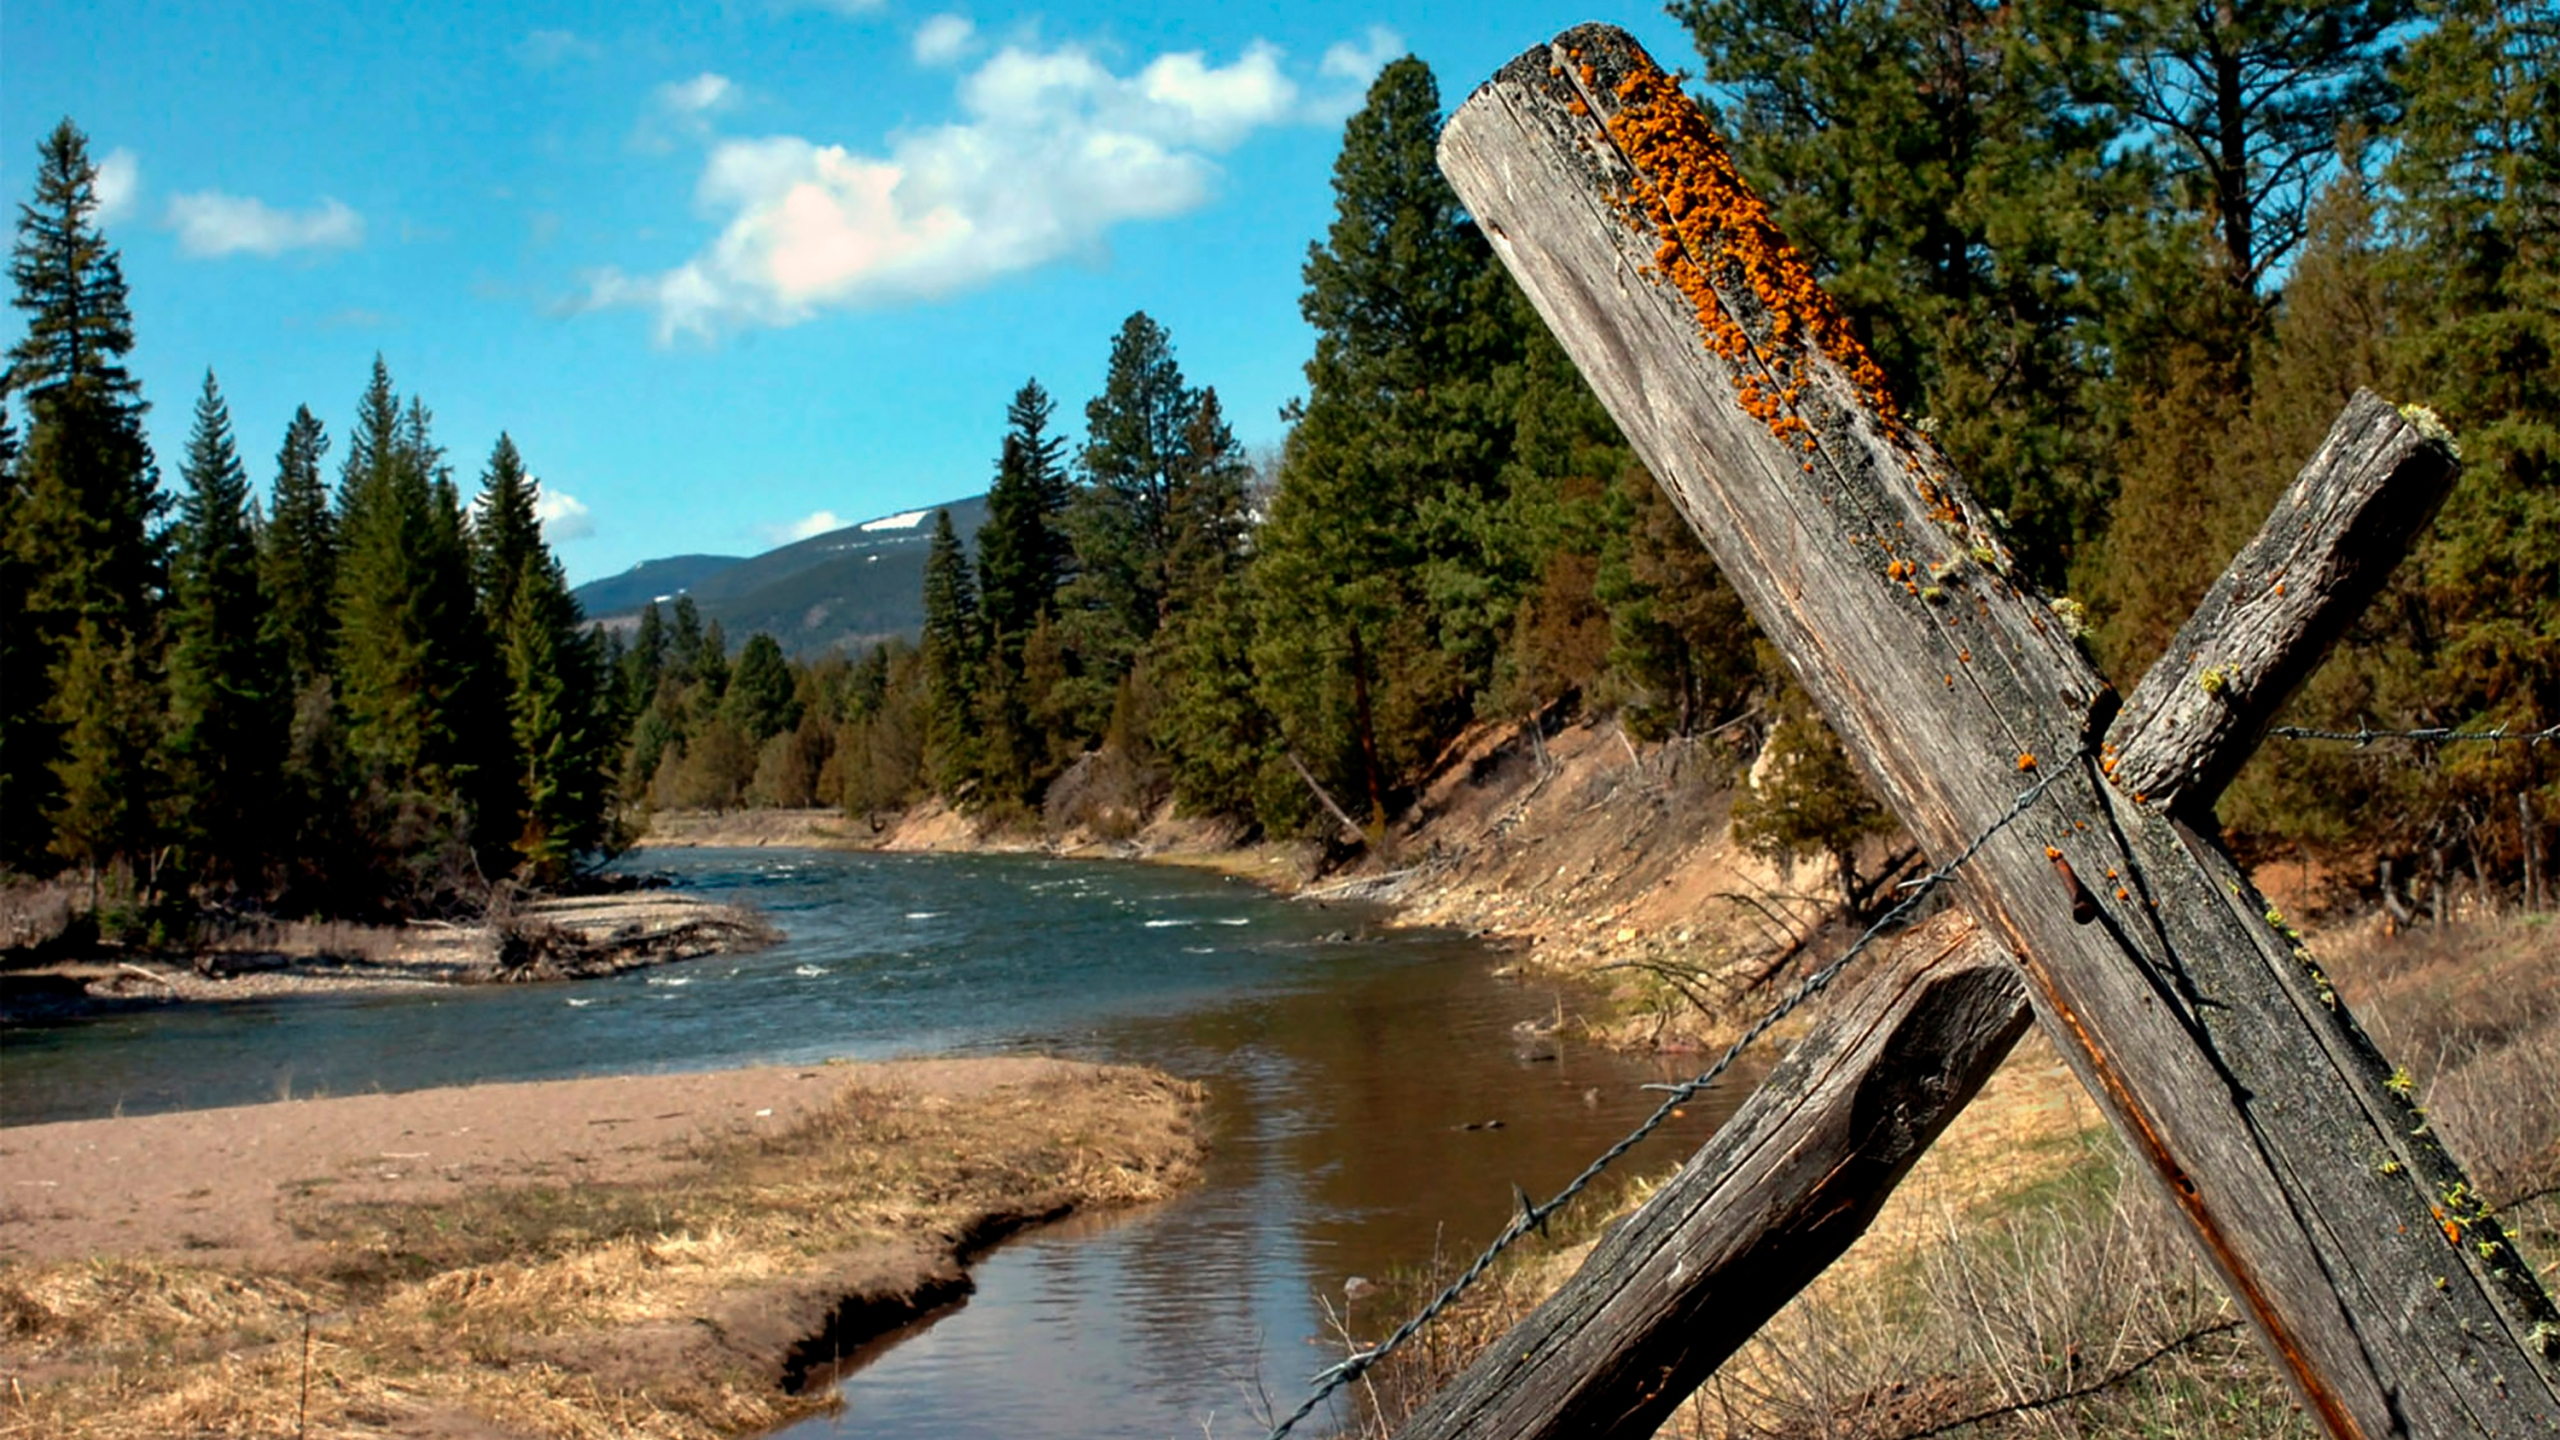 Jacobsen Creek, a tributary of the North Fork of the Blackfoot River, is seen near Ovando, Mont., on April 26, 2006. ( Jennifer Michaelis / The Missoulian via Associated Press)